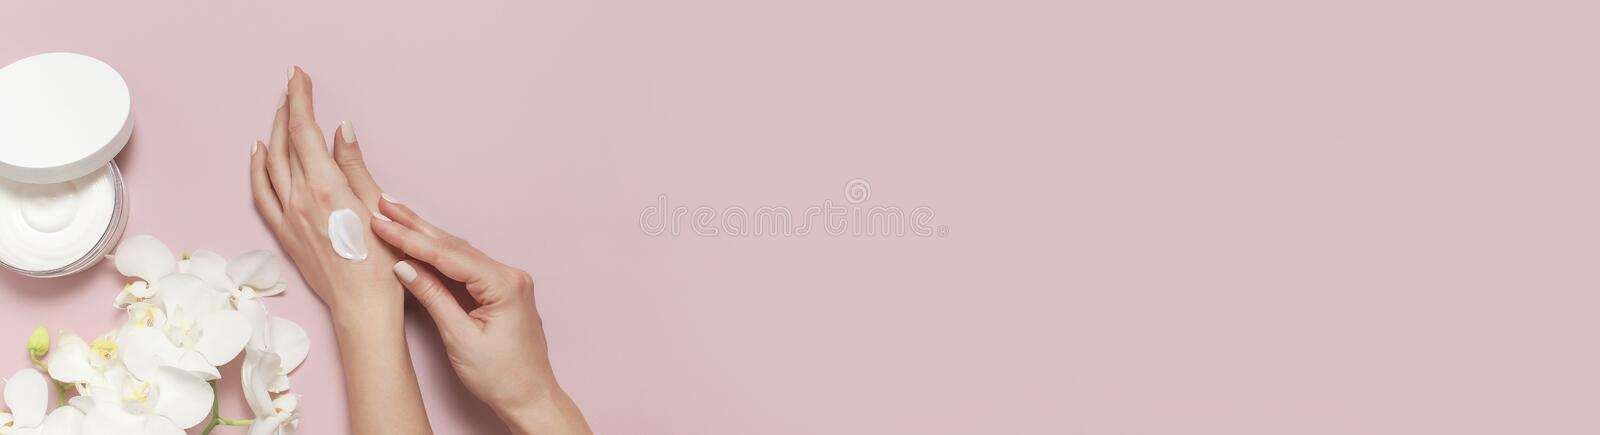 Young woman moisturizes her hand with cosmetic cream lotion opened container with cream body milk White Phalaenopsis orchid royalty free stock photos